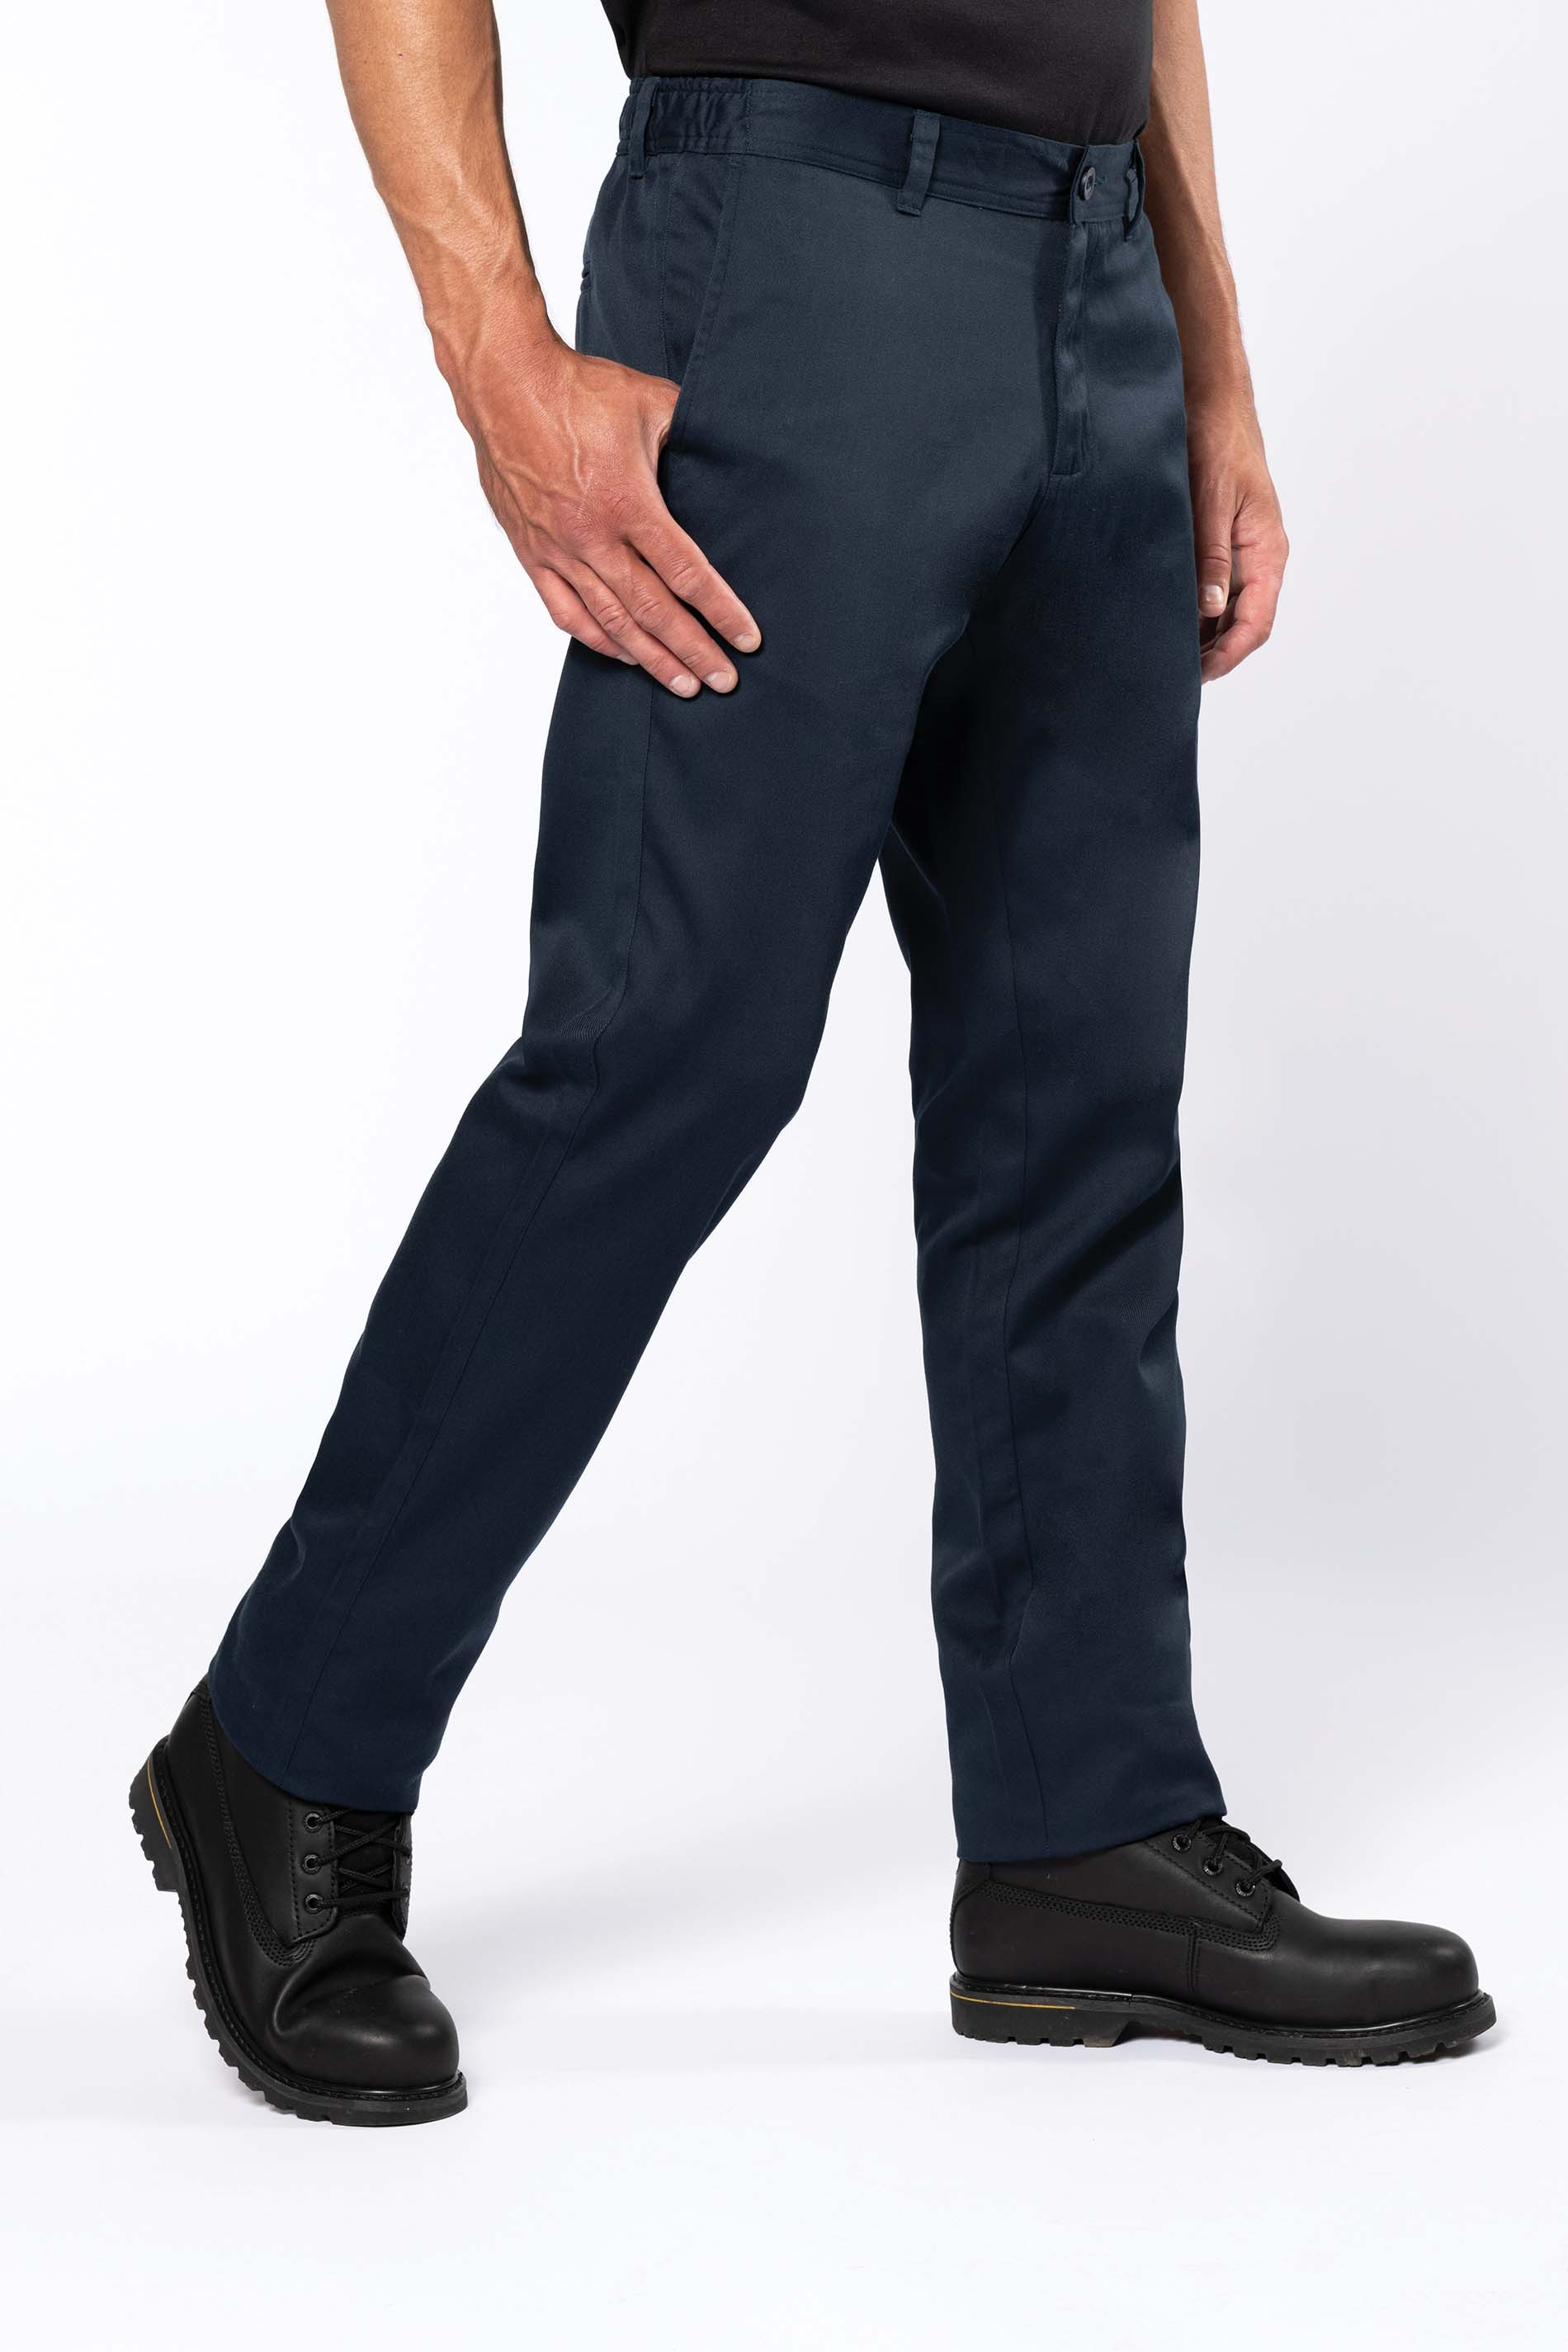 Kariban Pantalon DayToDay homme